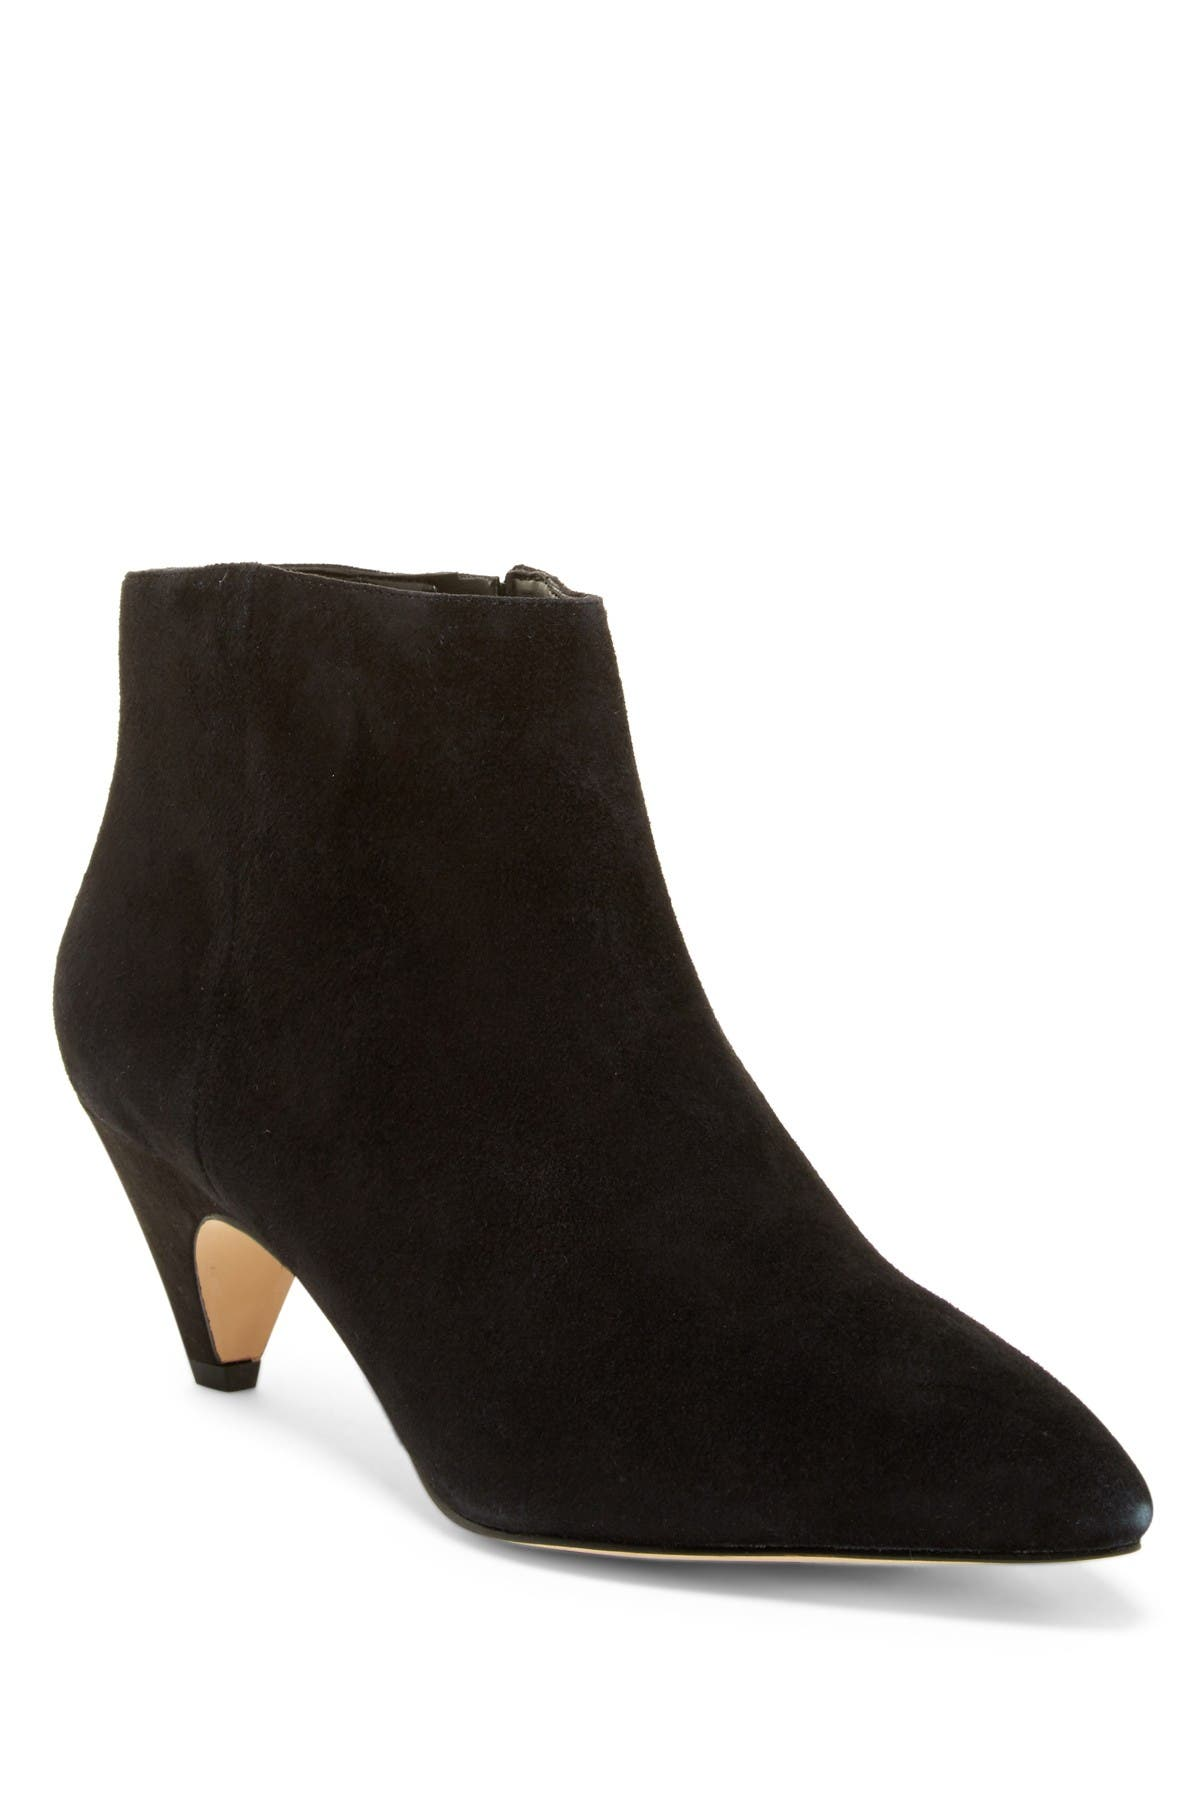 Image of Sam Edelman Lucy Pointed Toe Bootie